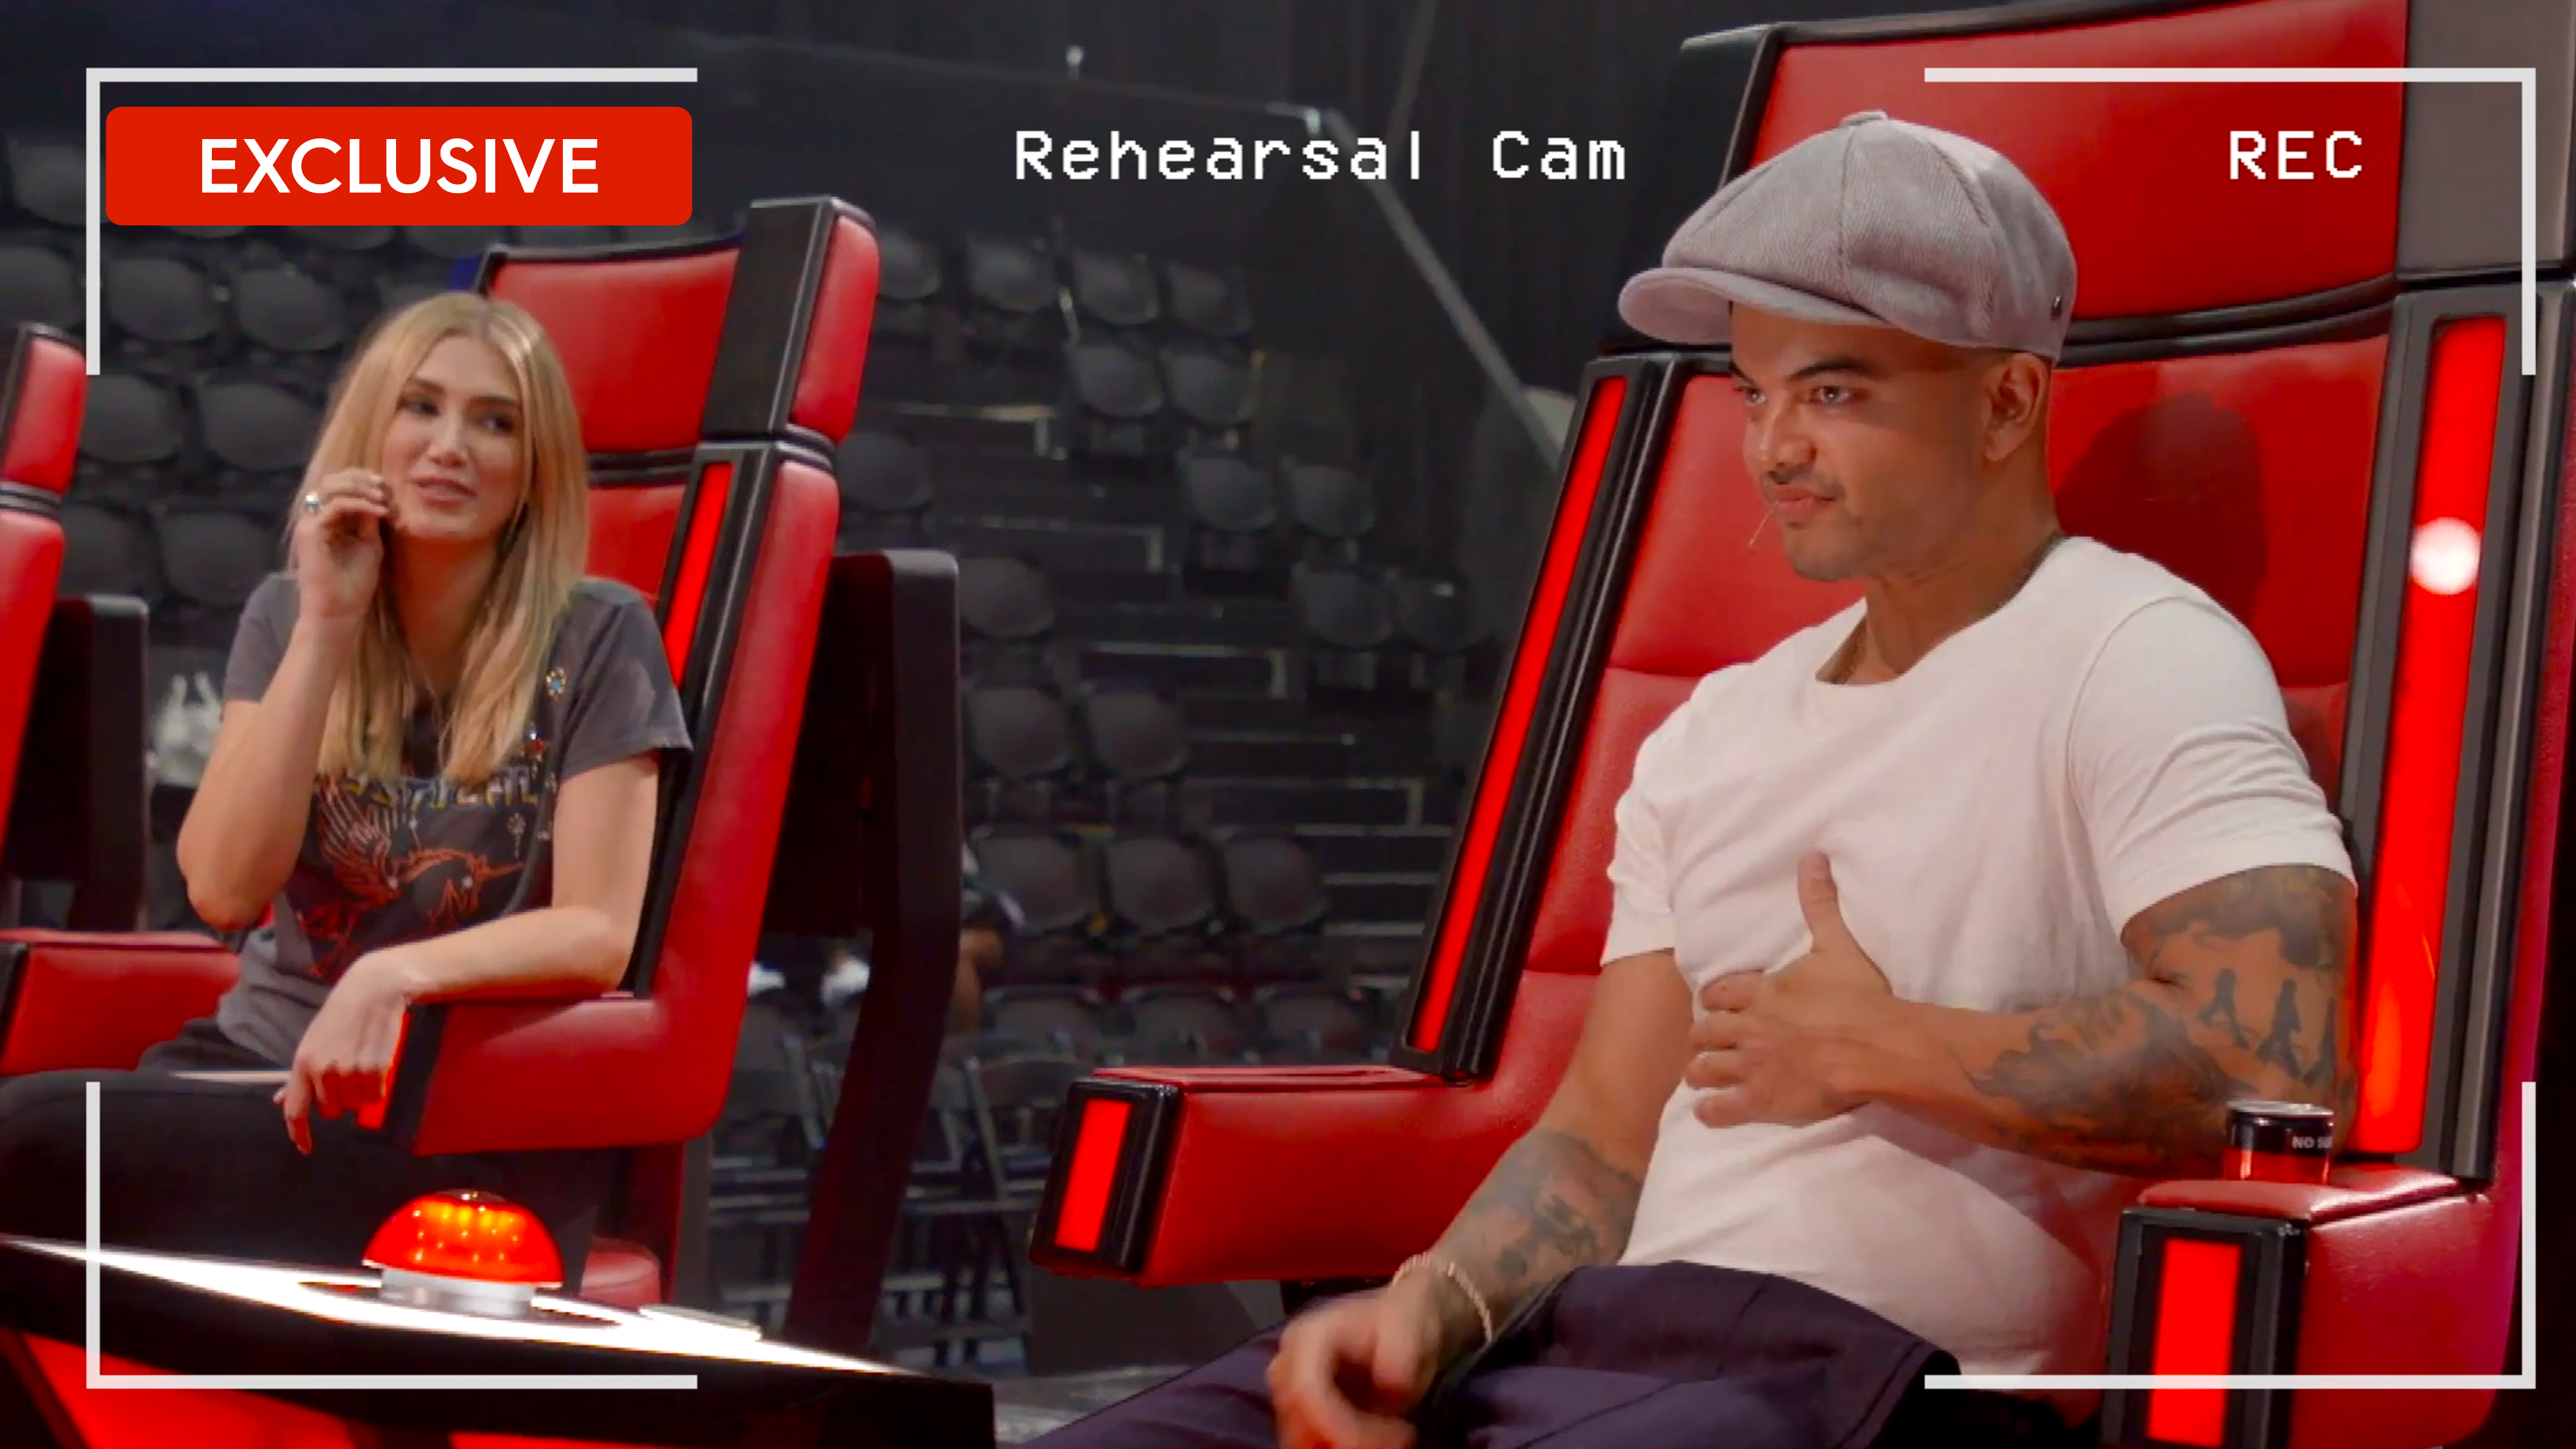 Rehearsal-Cam: Guy's first spin